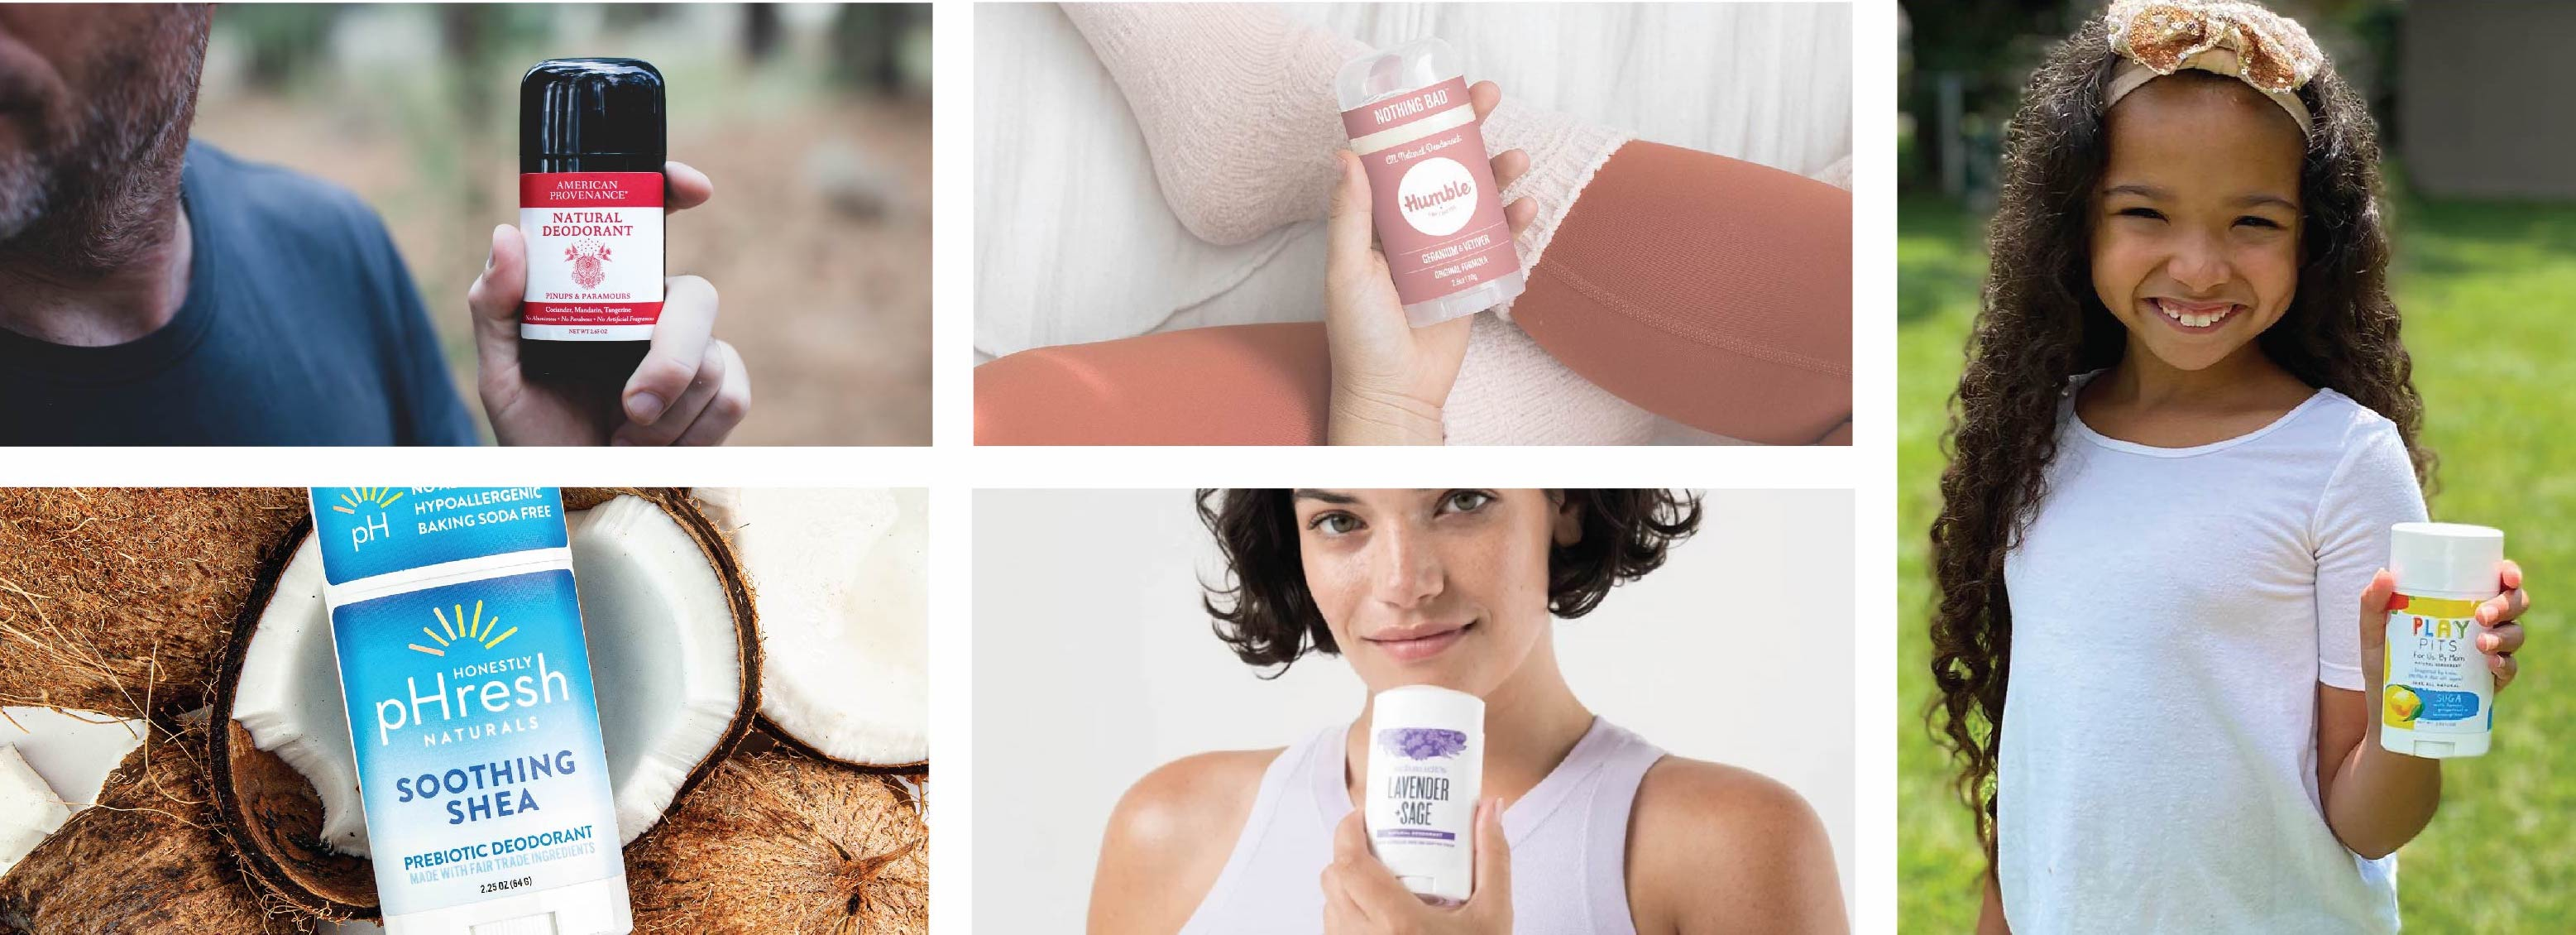 Founder of natural deodorant company names his top 10 choices for natural deodorant